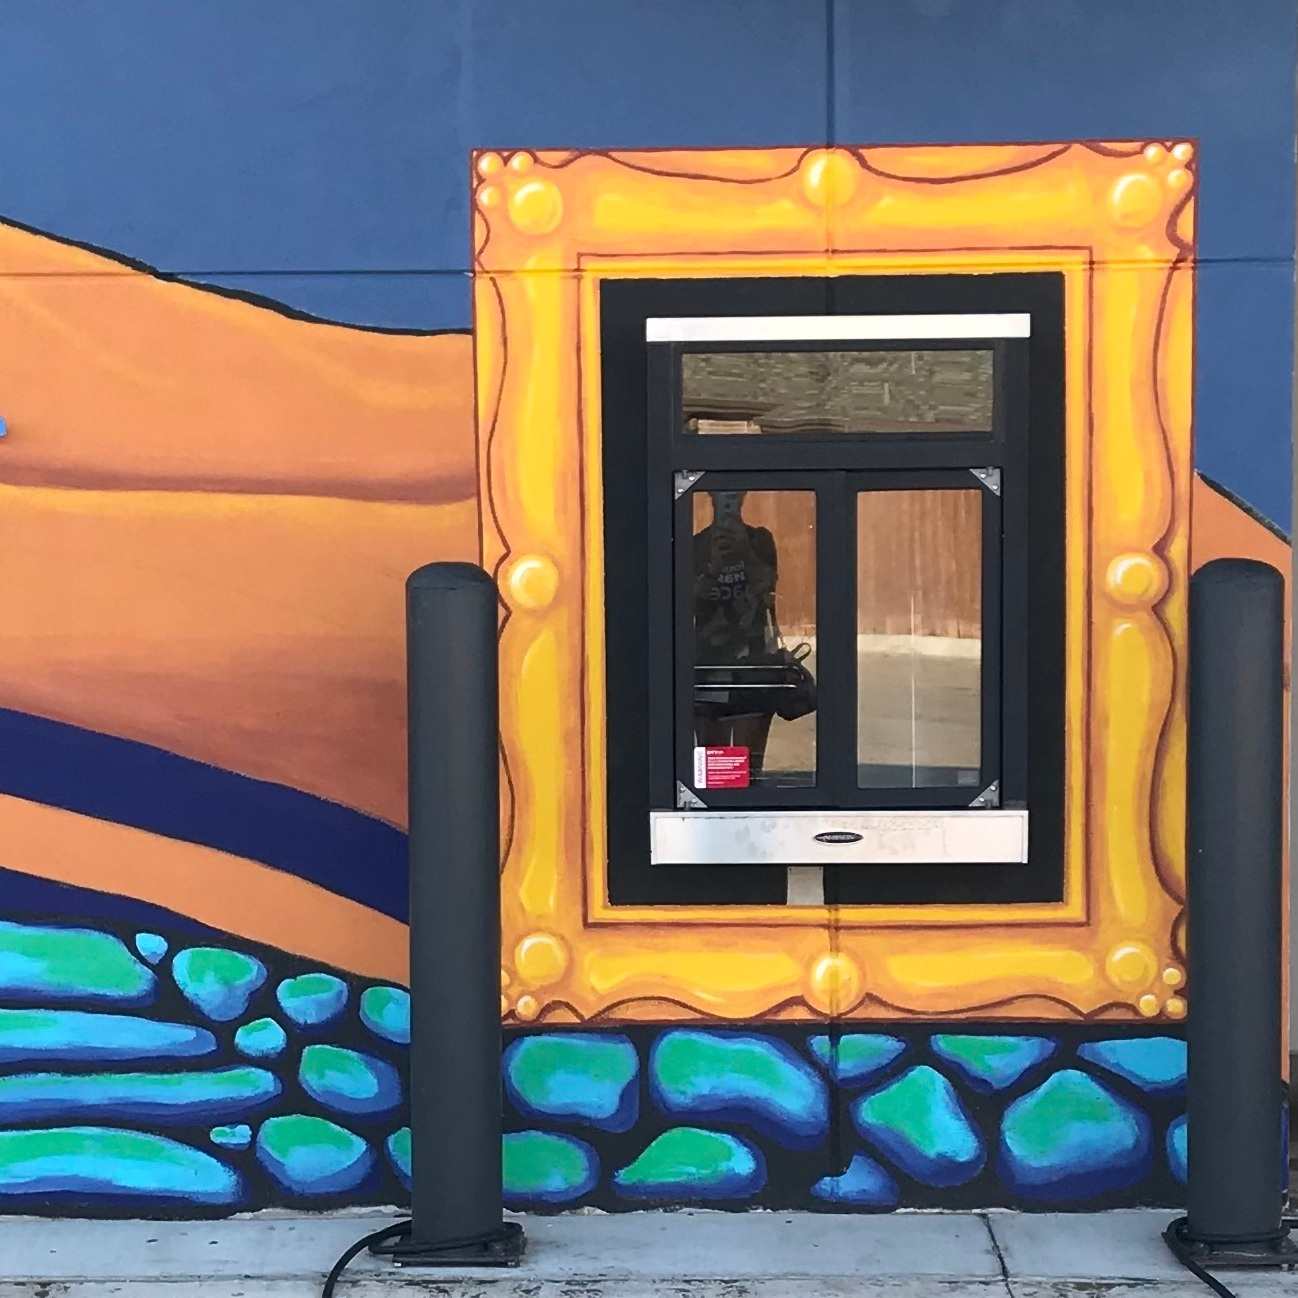 take out window mural that looks like a golden frame